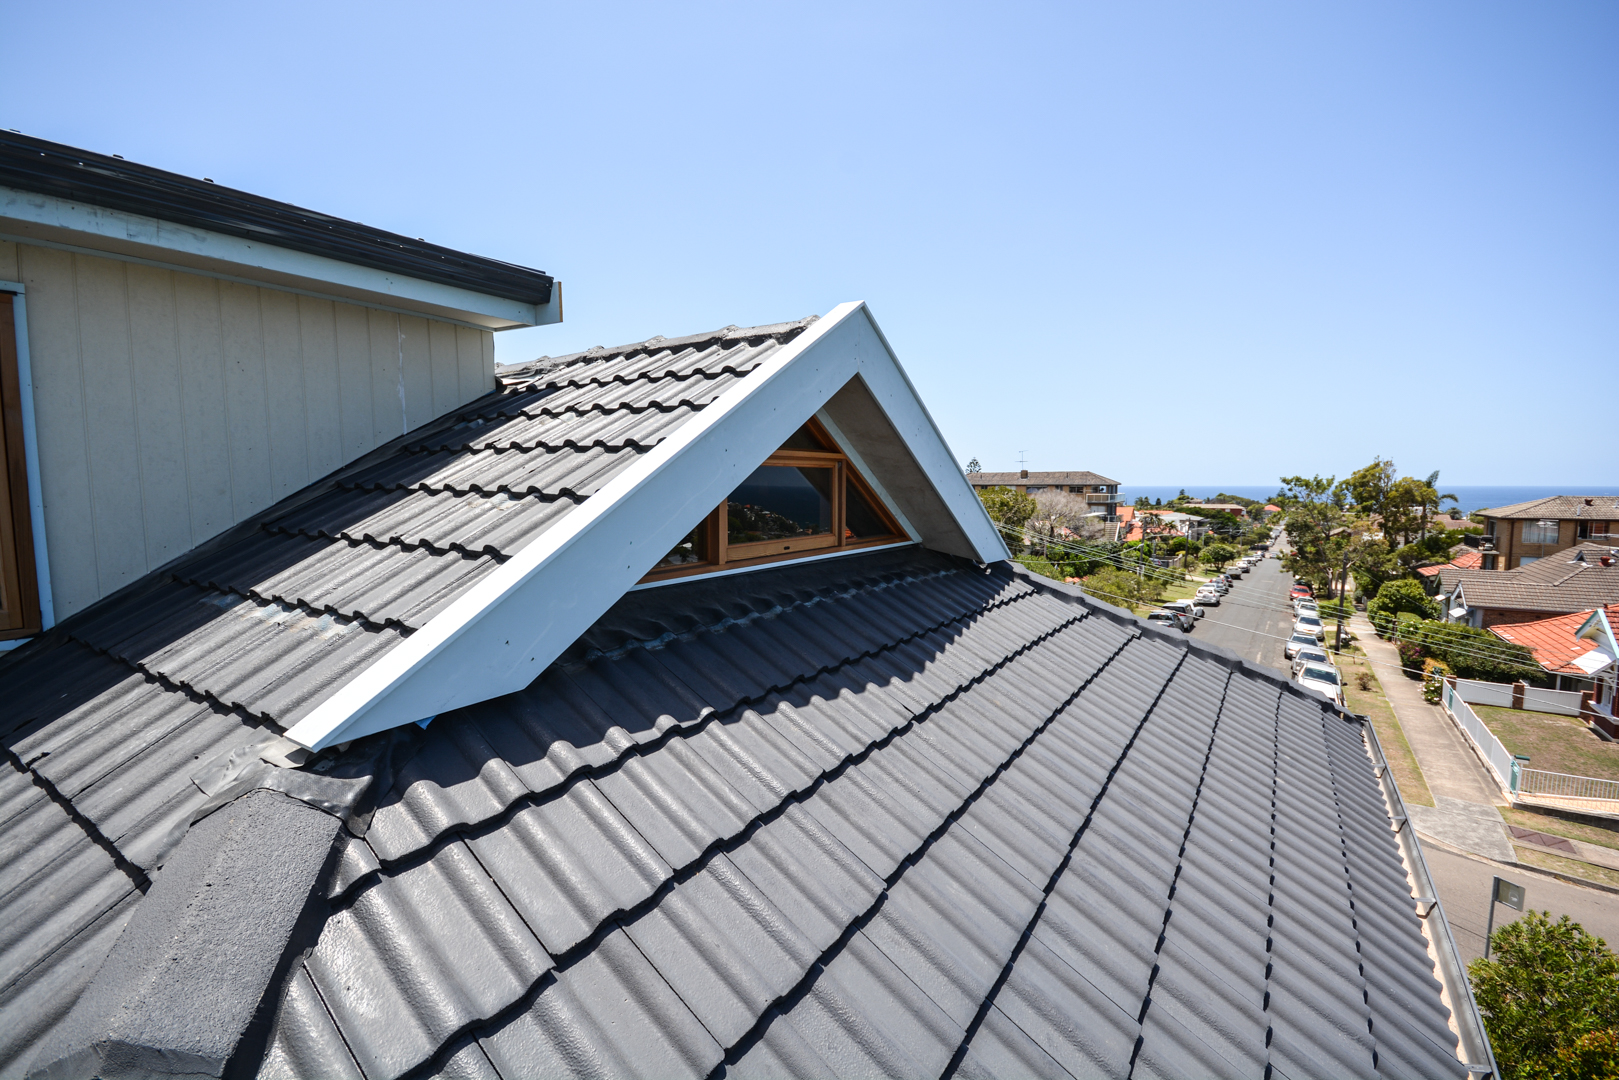 Attic extension roof view